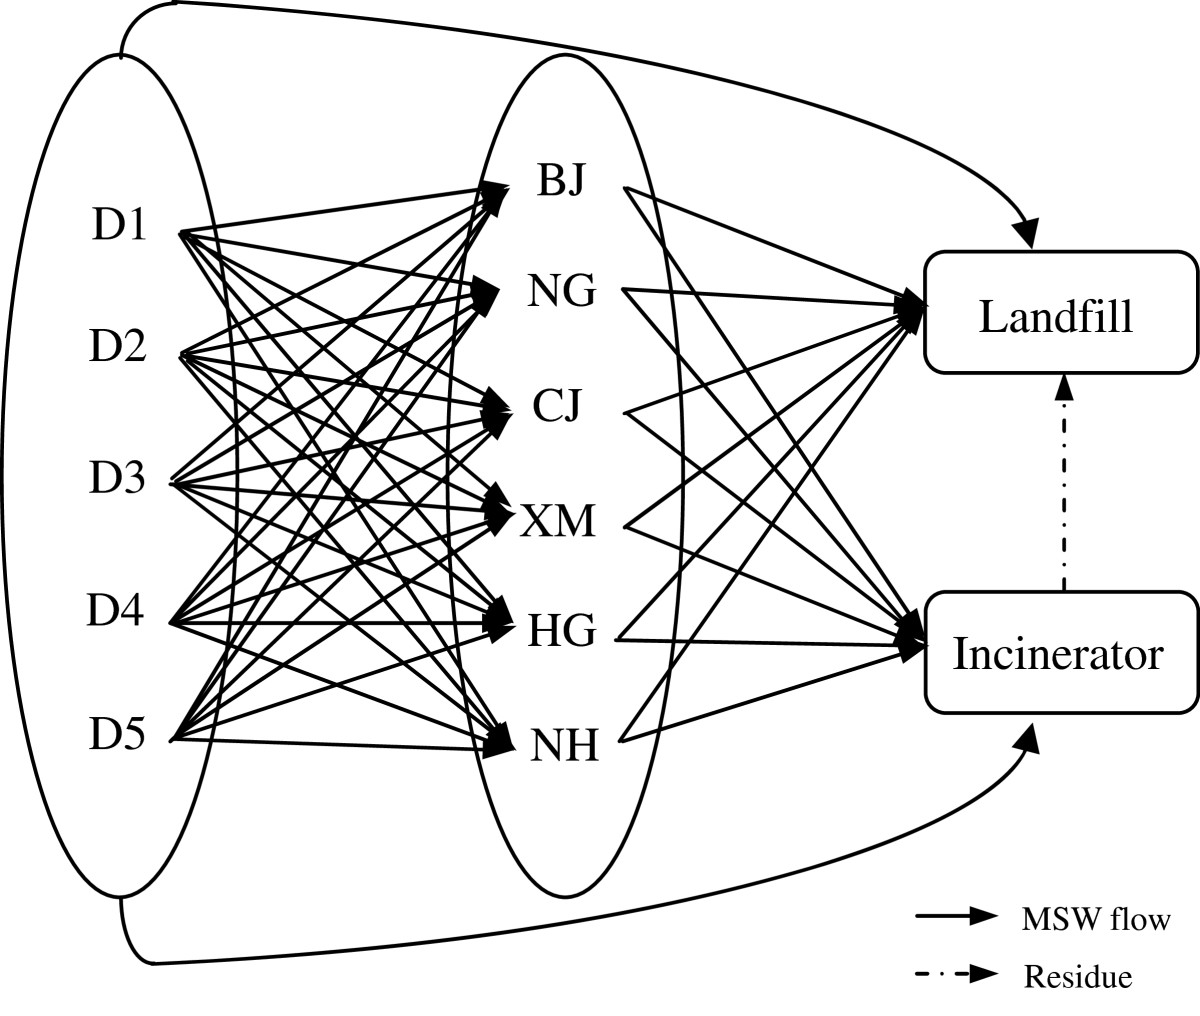 https://static-content.springer.com/image/art%3A10.1186%2F2193-2697-1-7/MediaObjects/40068_2012_Article_8_Fig2_HTML.jpg